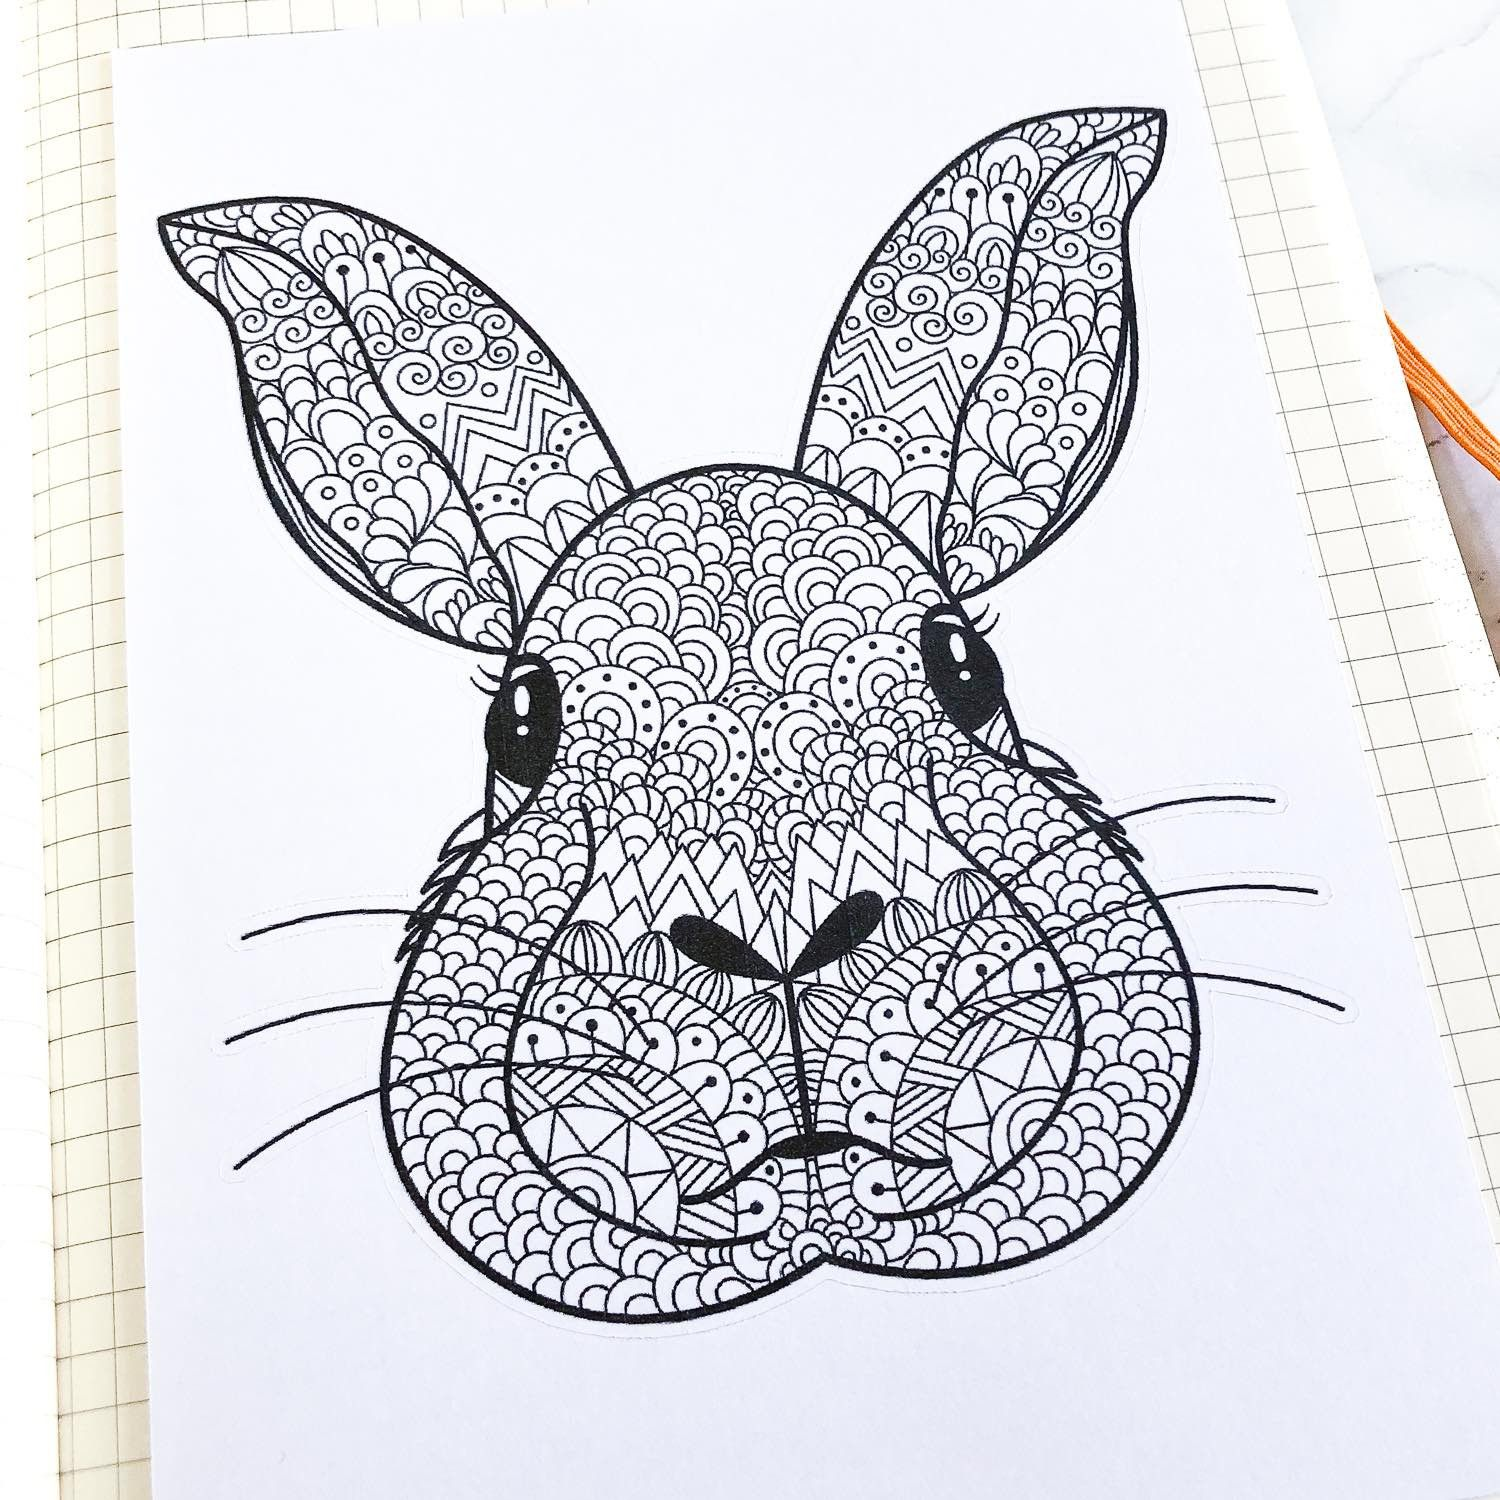 Sticker Pleine Page Coloriage Relaxant Foretsticker Geant Coloriage Relaxant Lapin